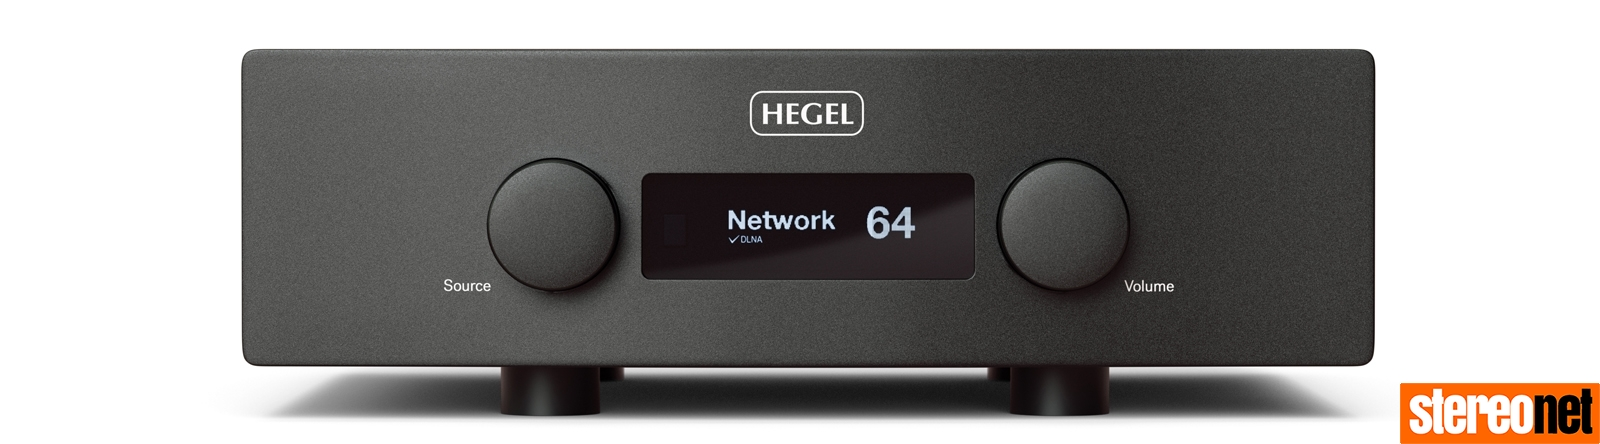 Hegel H390 Review